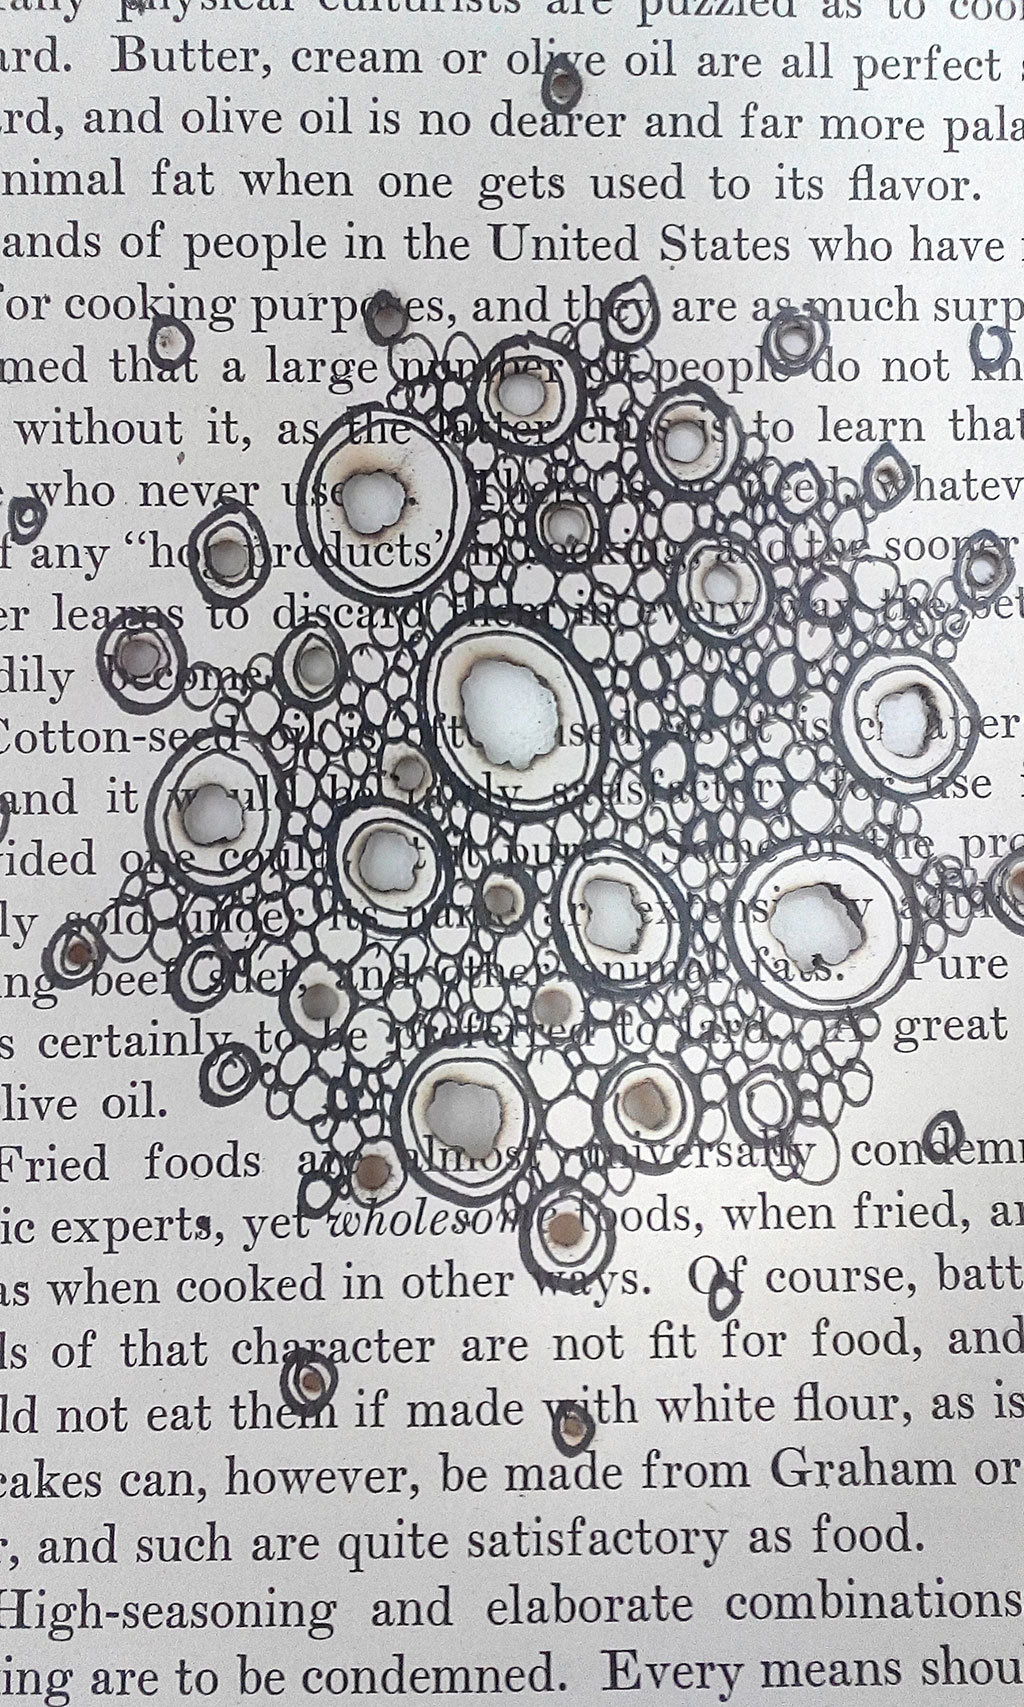 Mixed Media Art Blog - Artist Interview - Thurle Wright - Book Art - Doodle drawing days.